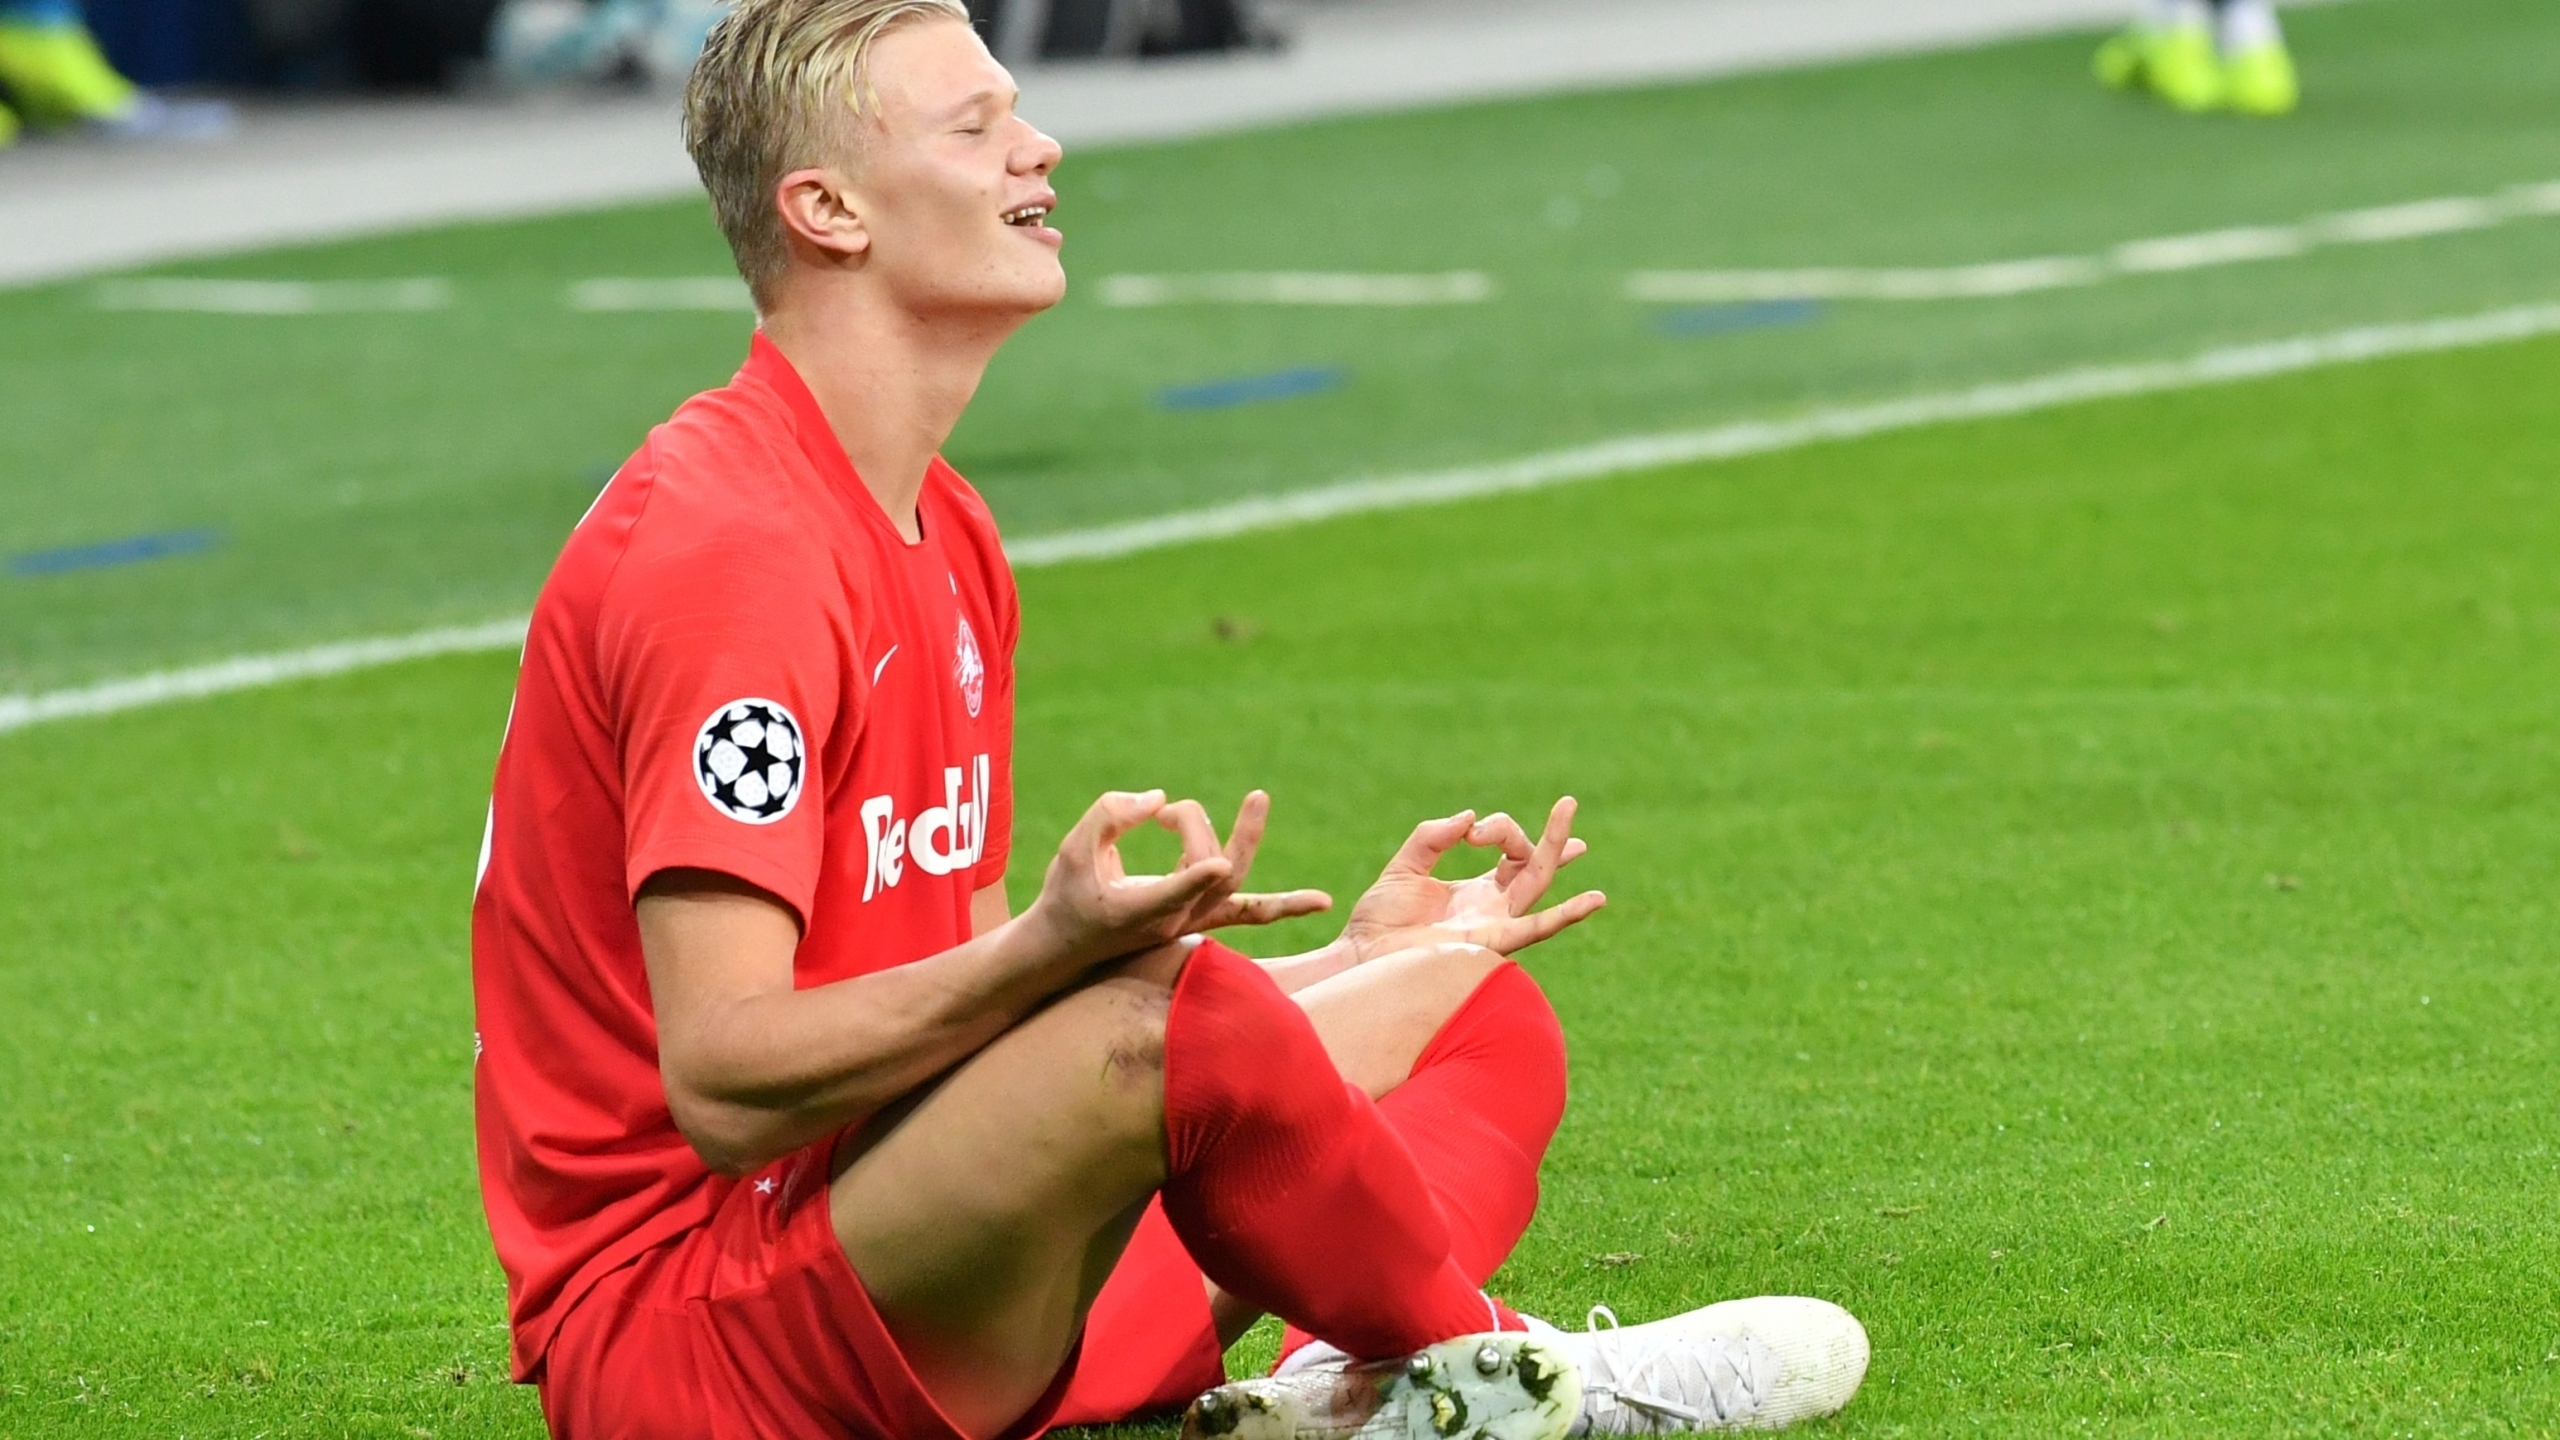 Chelsea has prepared 150 million pounds for the purchase of Erling Haaland.